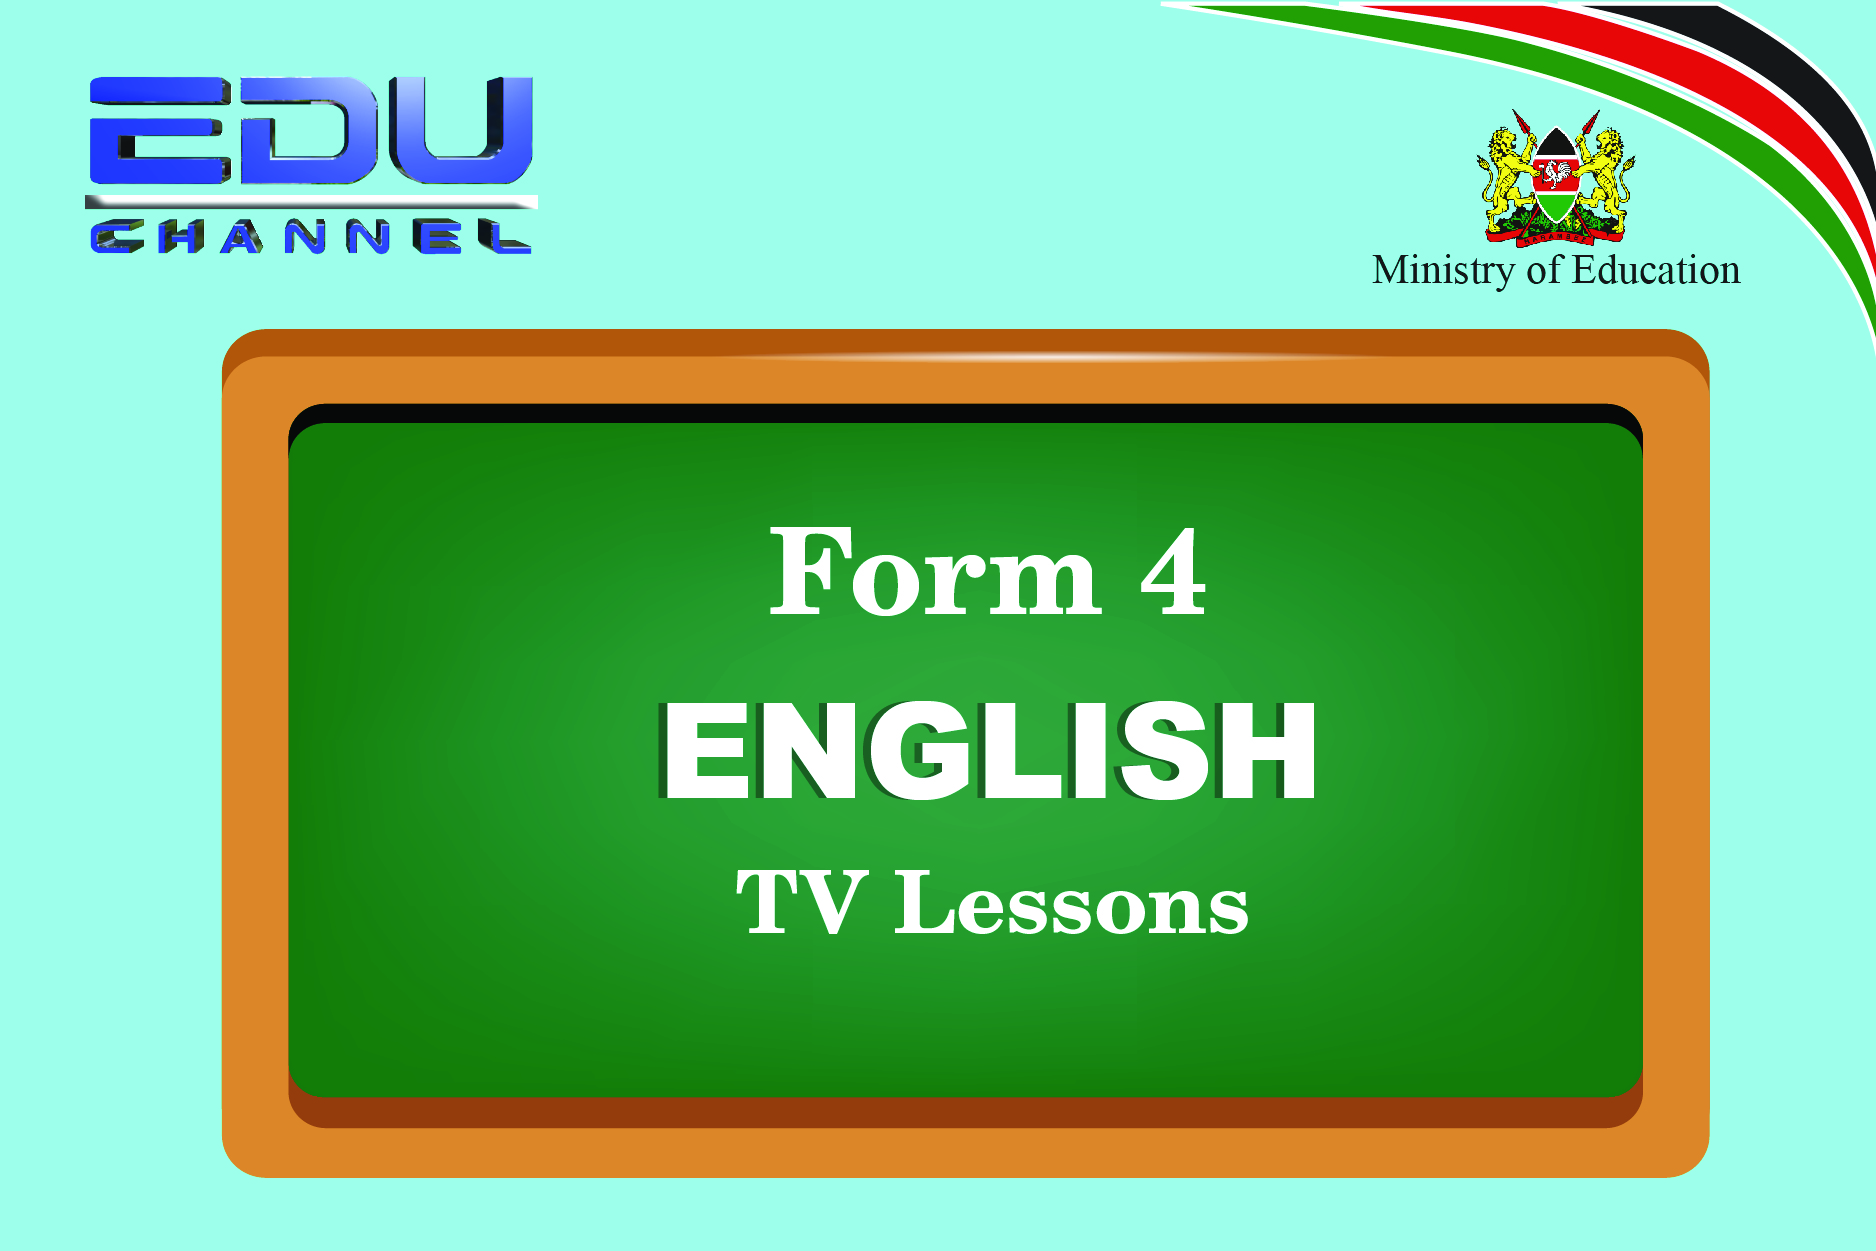 Form 4 English Lesson 3: Characterization and themes